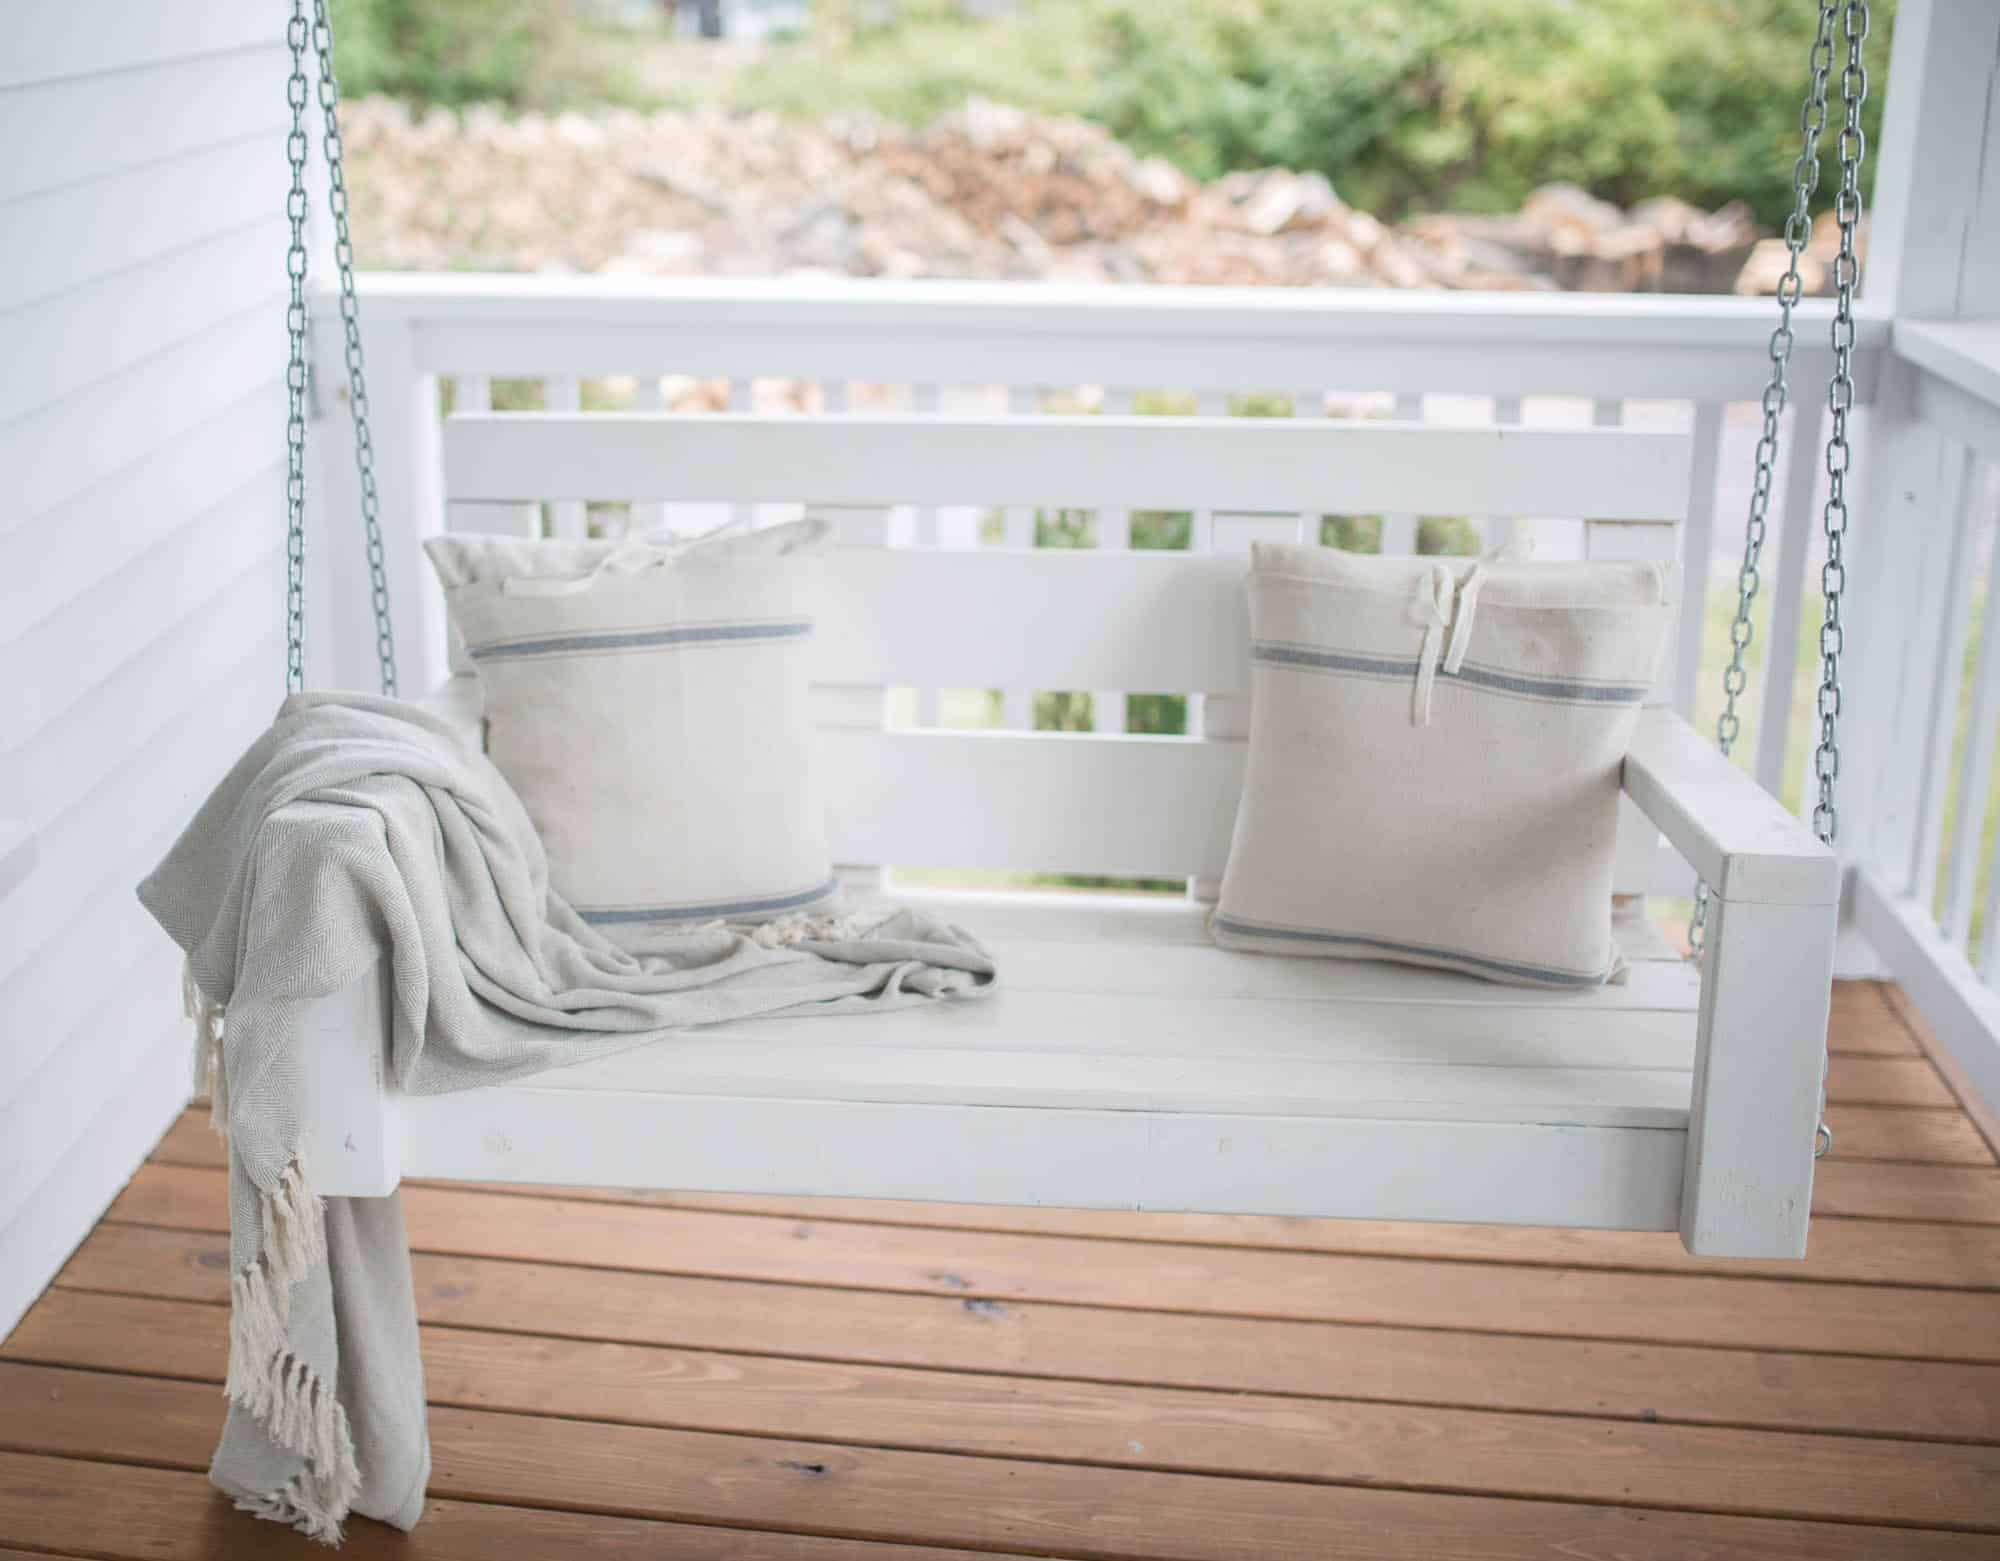 Fall Farmhouse Font Porch Swing with Grain Sack Pillows